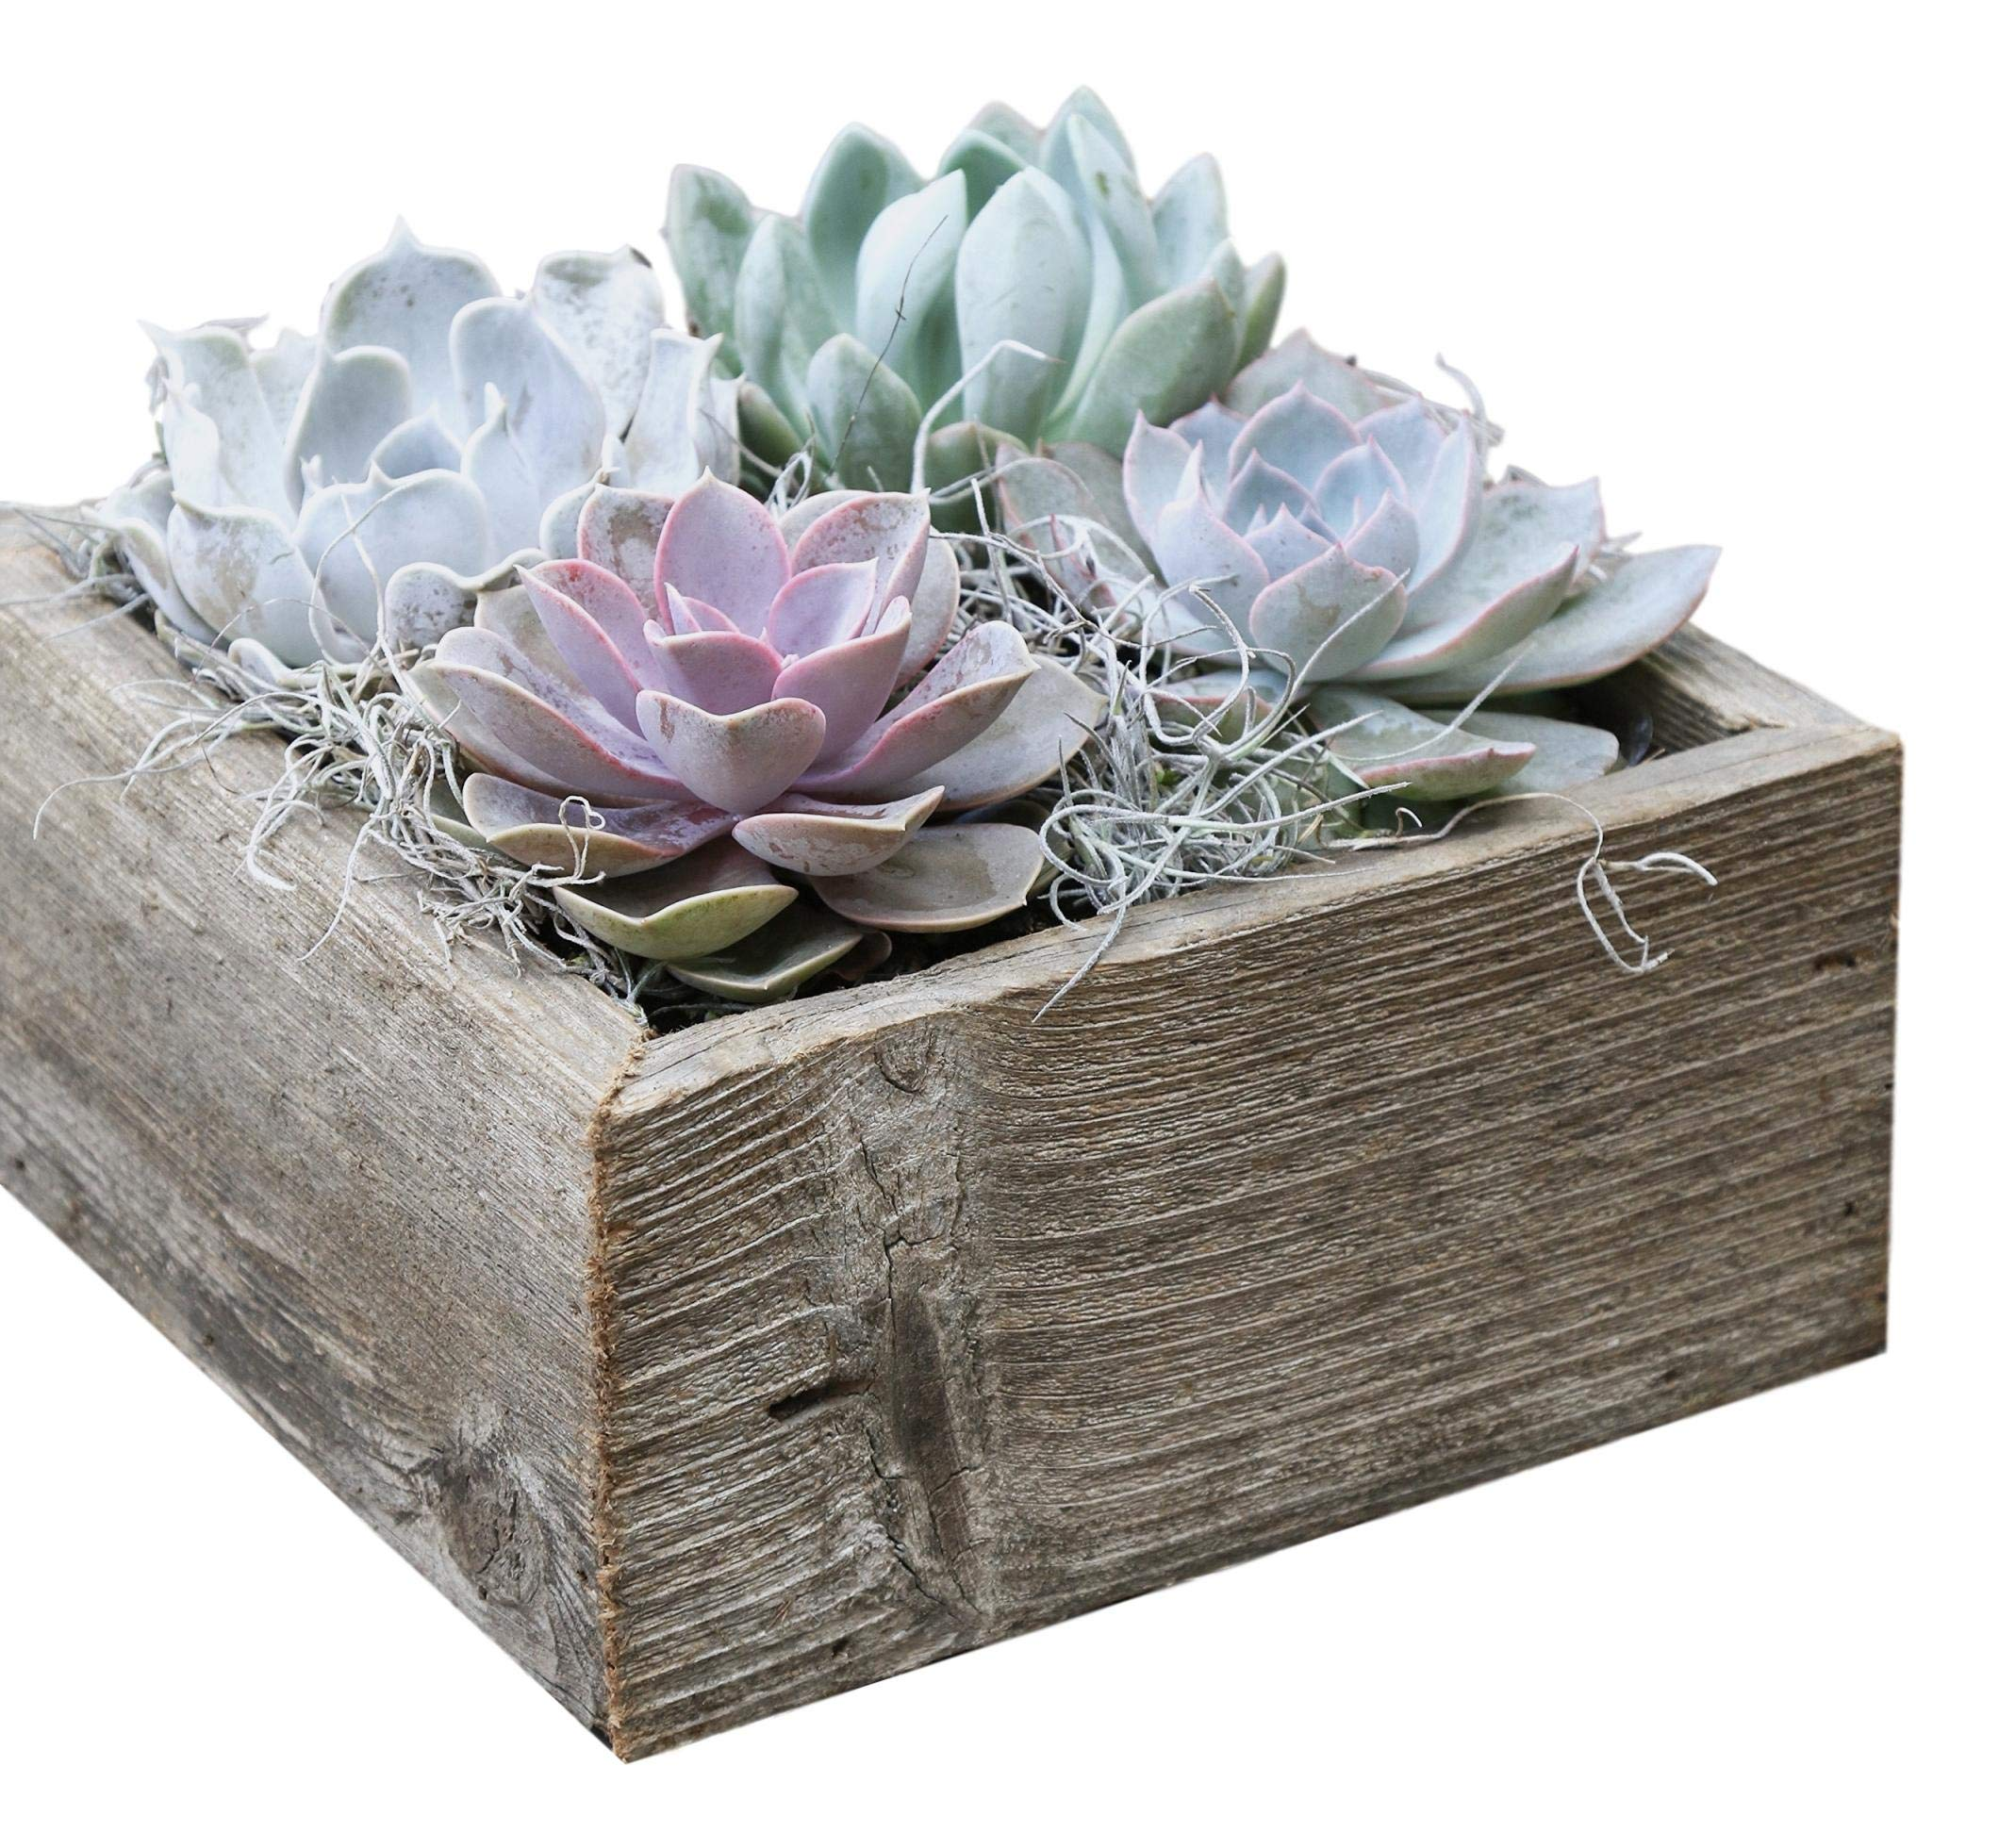 Colorful Succulent Garden in Reclaimed Wood Succulent Planter - 8.5'' Shallow Cube - Ships from Easy to Grow Bulbs, a California Licensed Nursery by Easy to Grow